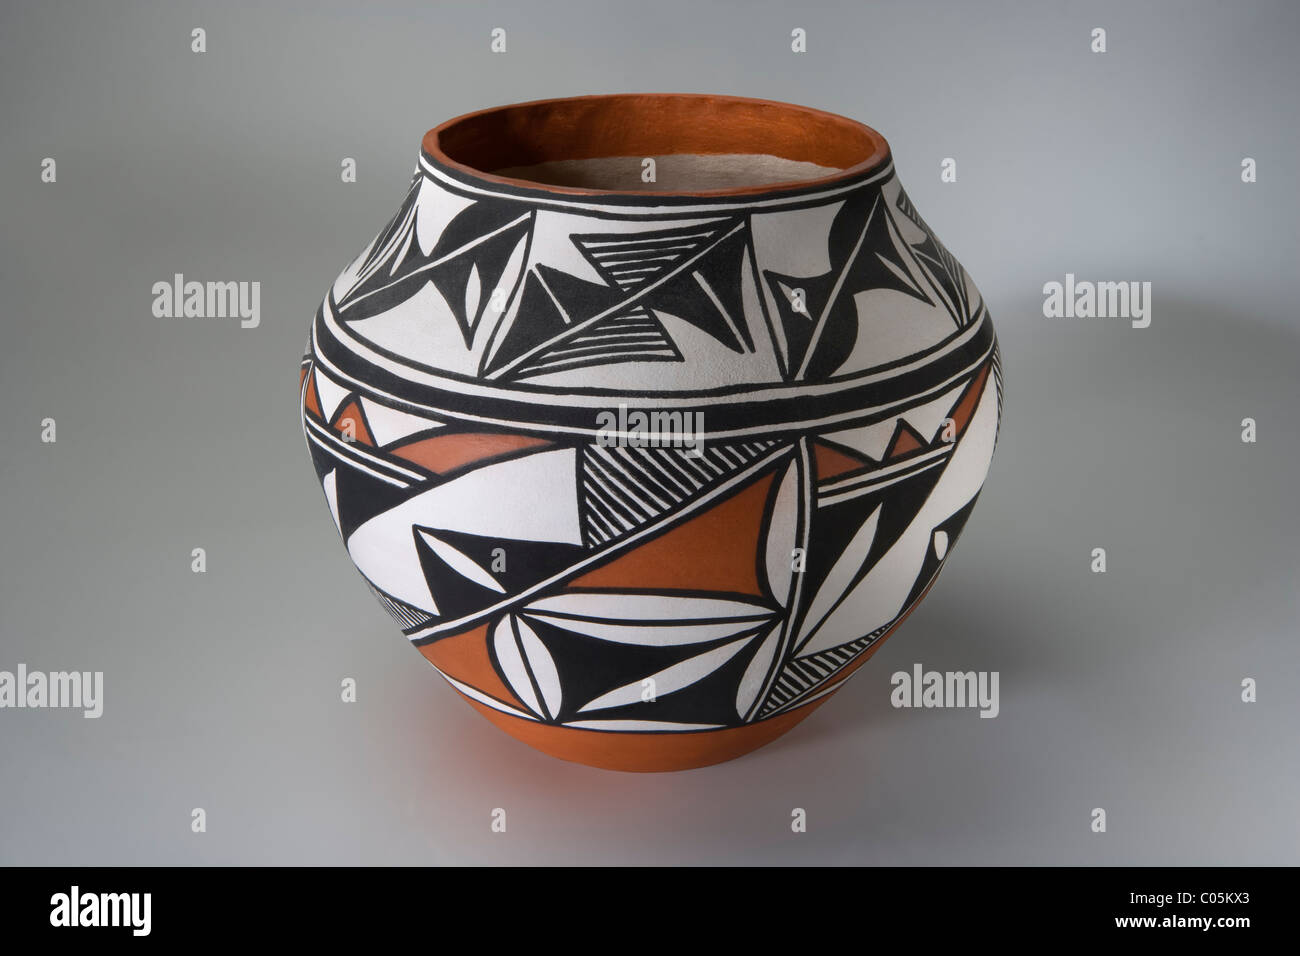 A hand coiled and painted Acoma pueblo Indian pot - Stock Image